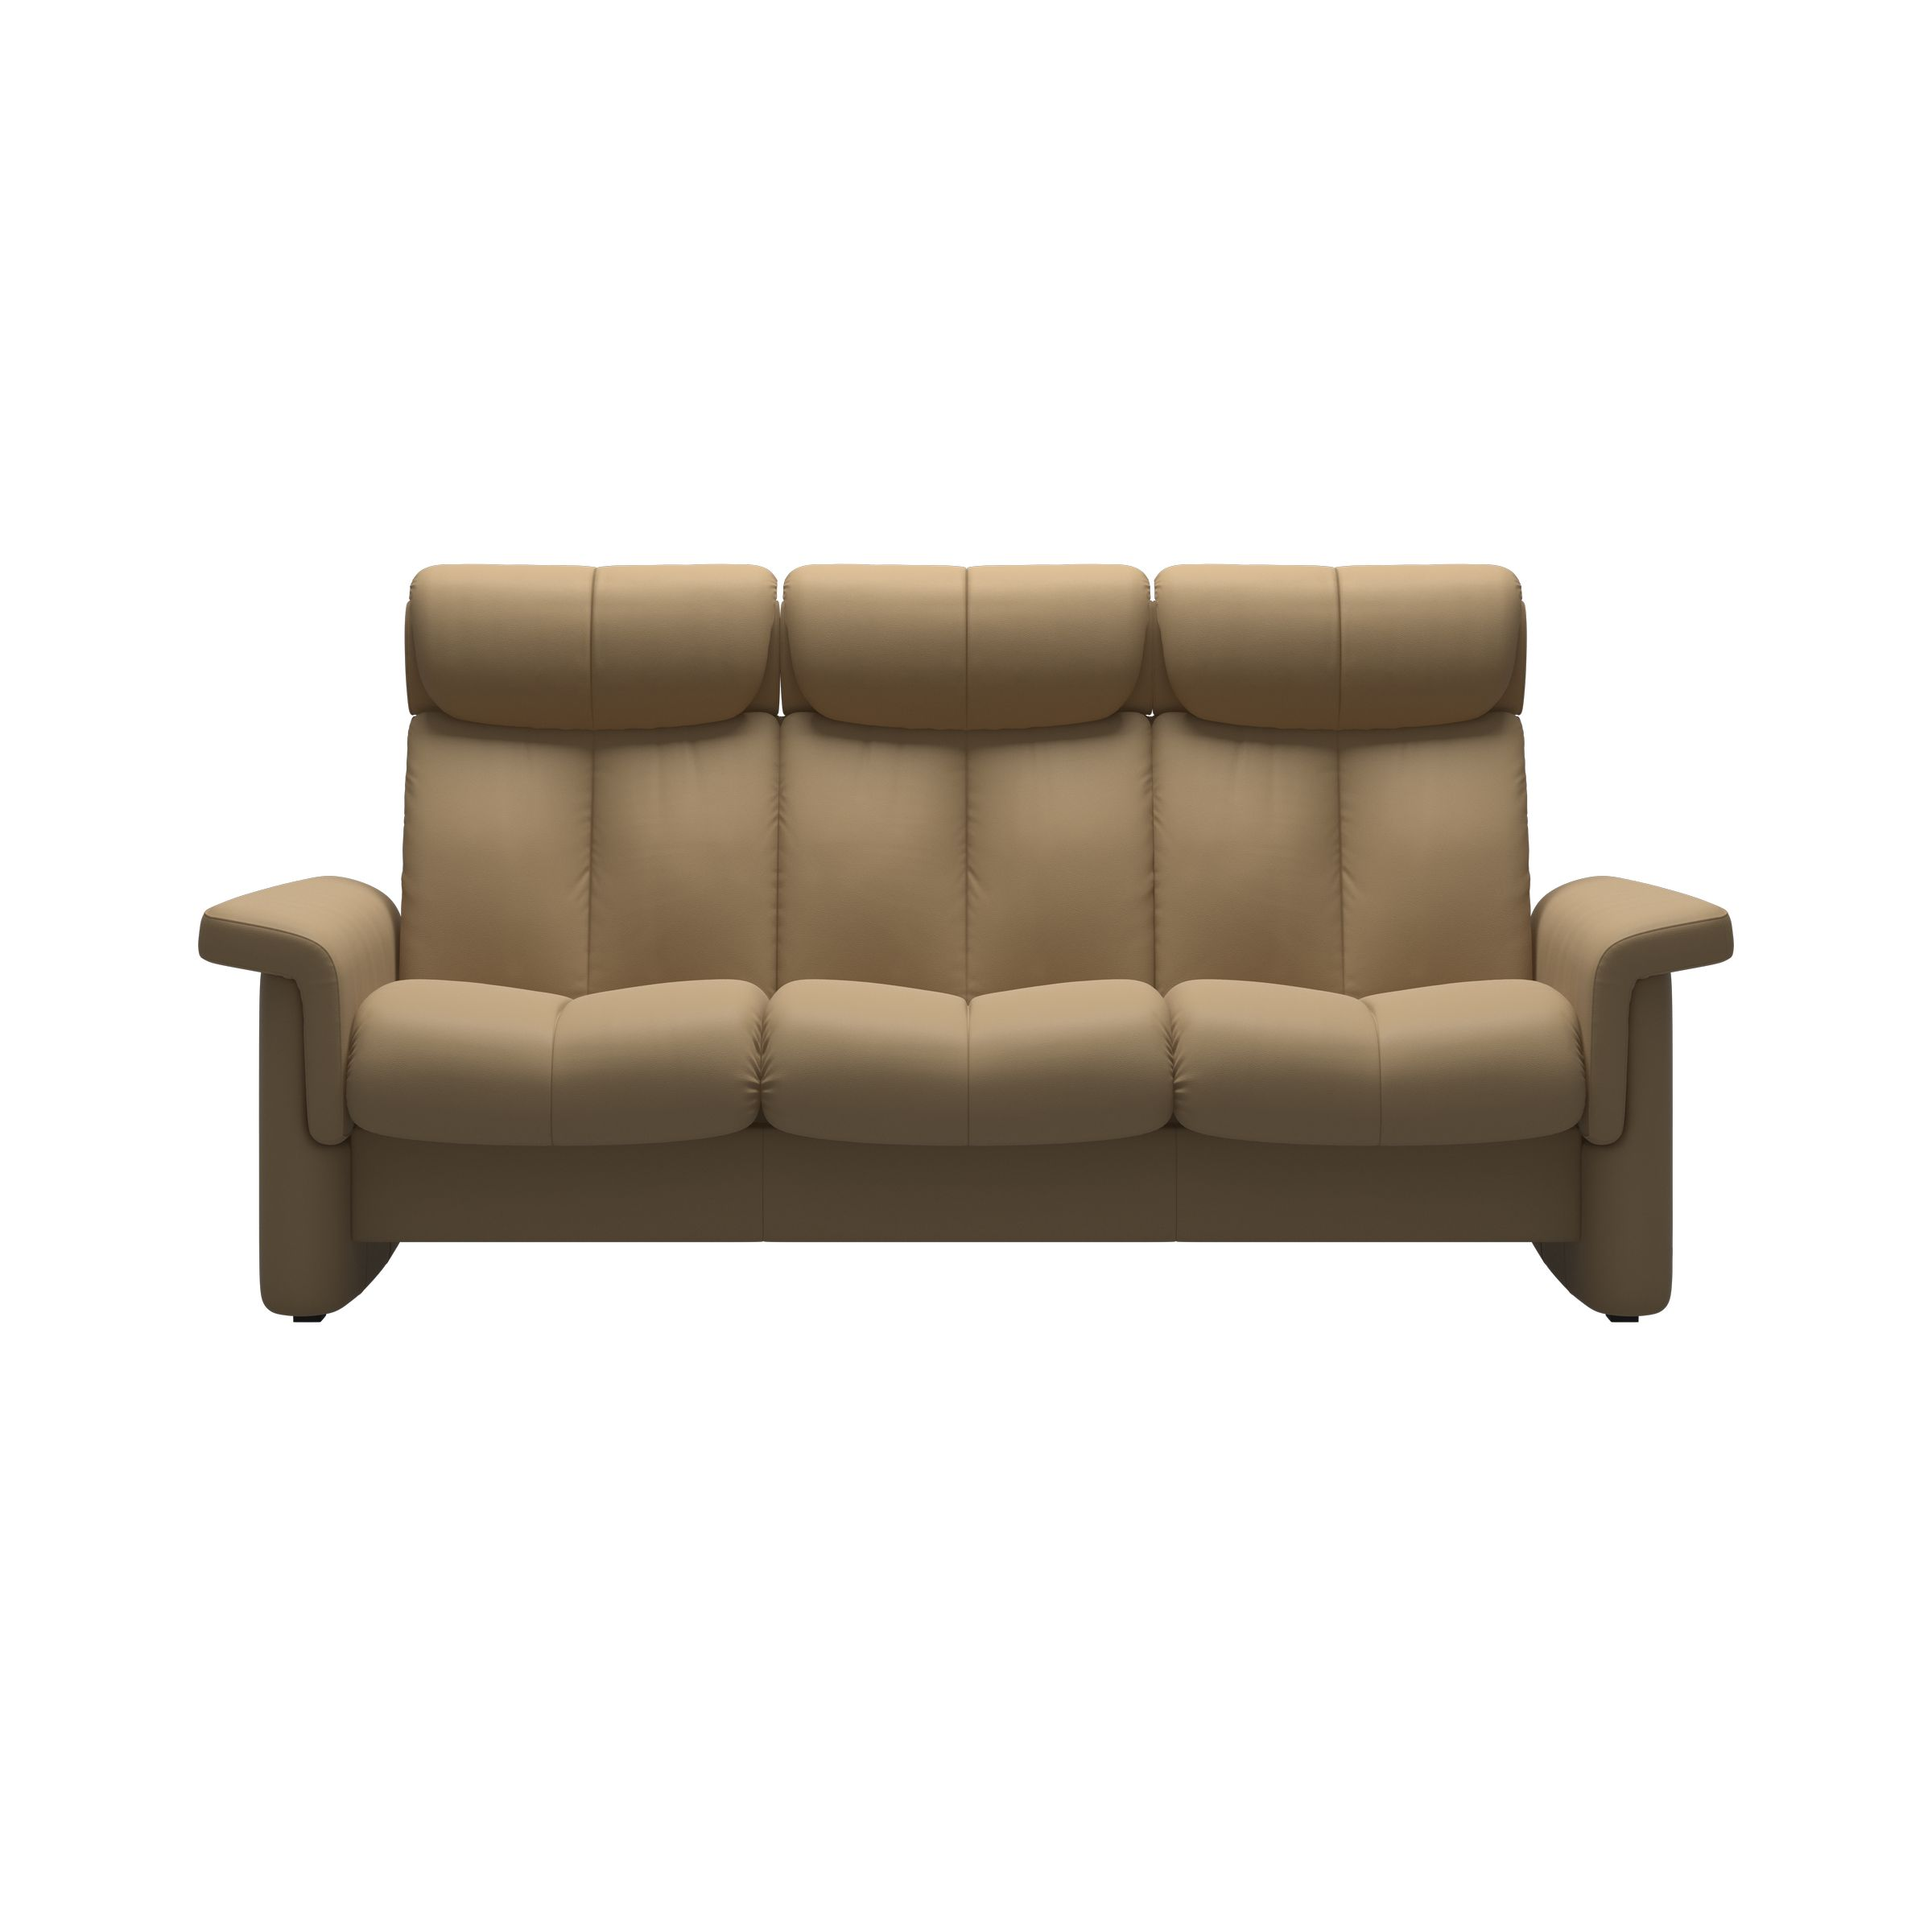 Stressless Legend - High back Recliner Sofa | Stressless©